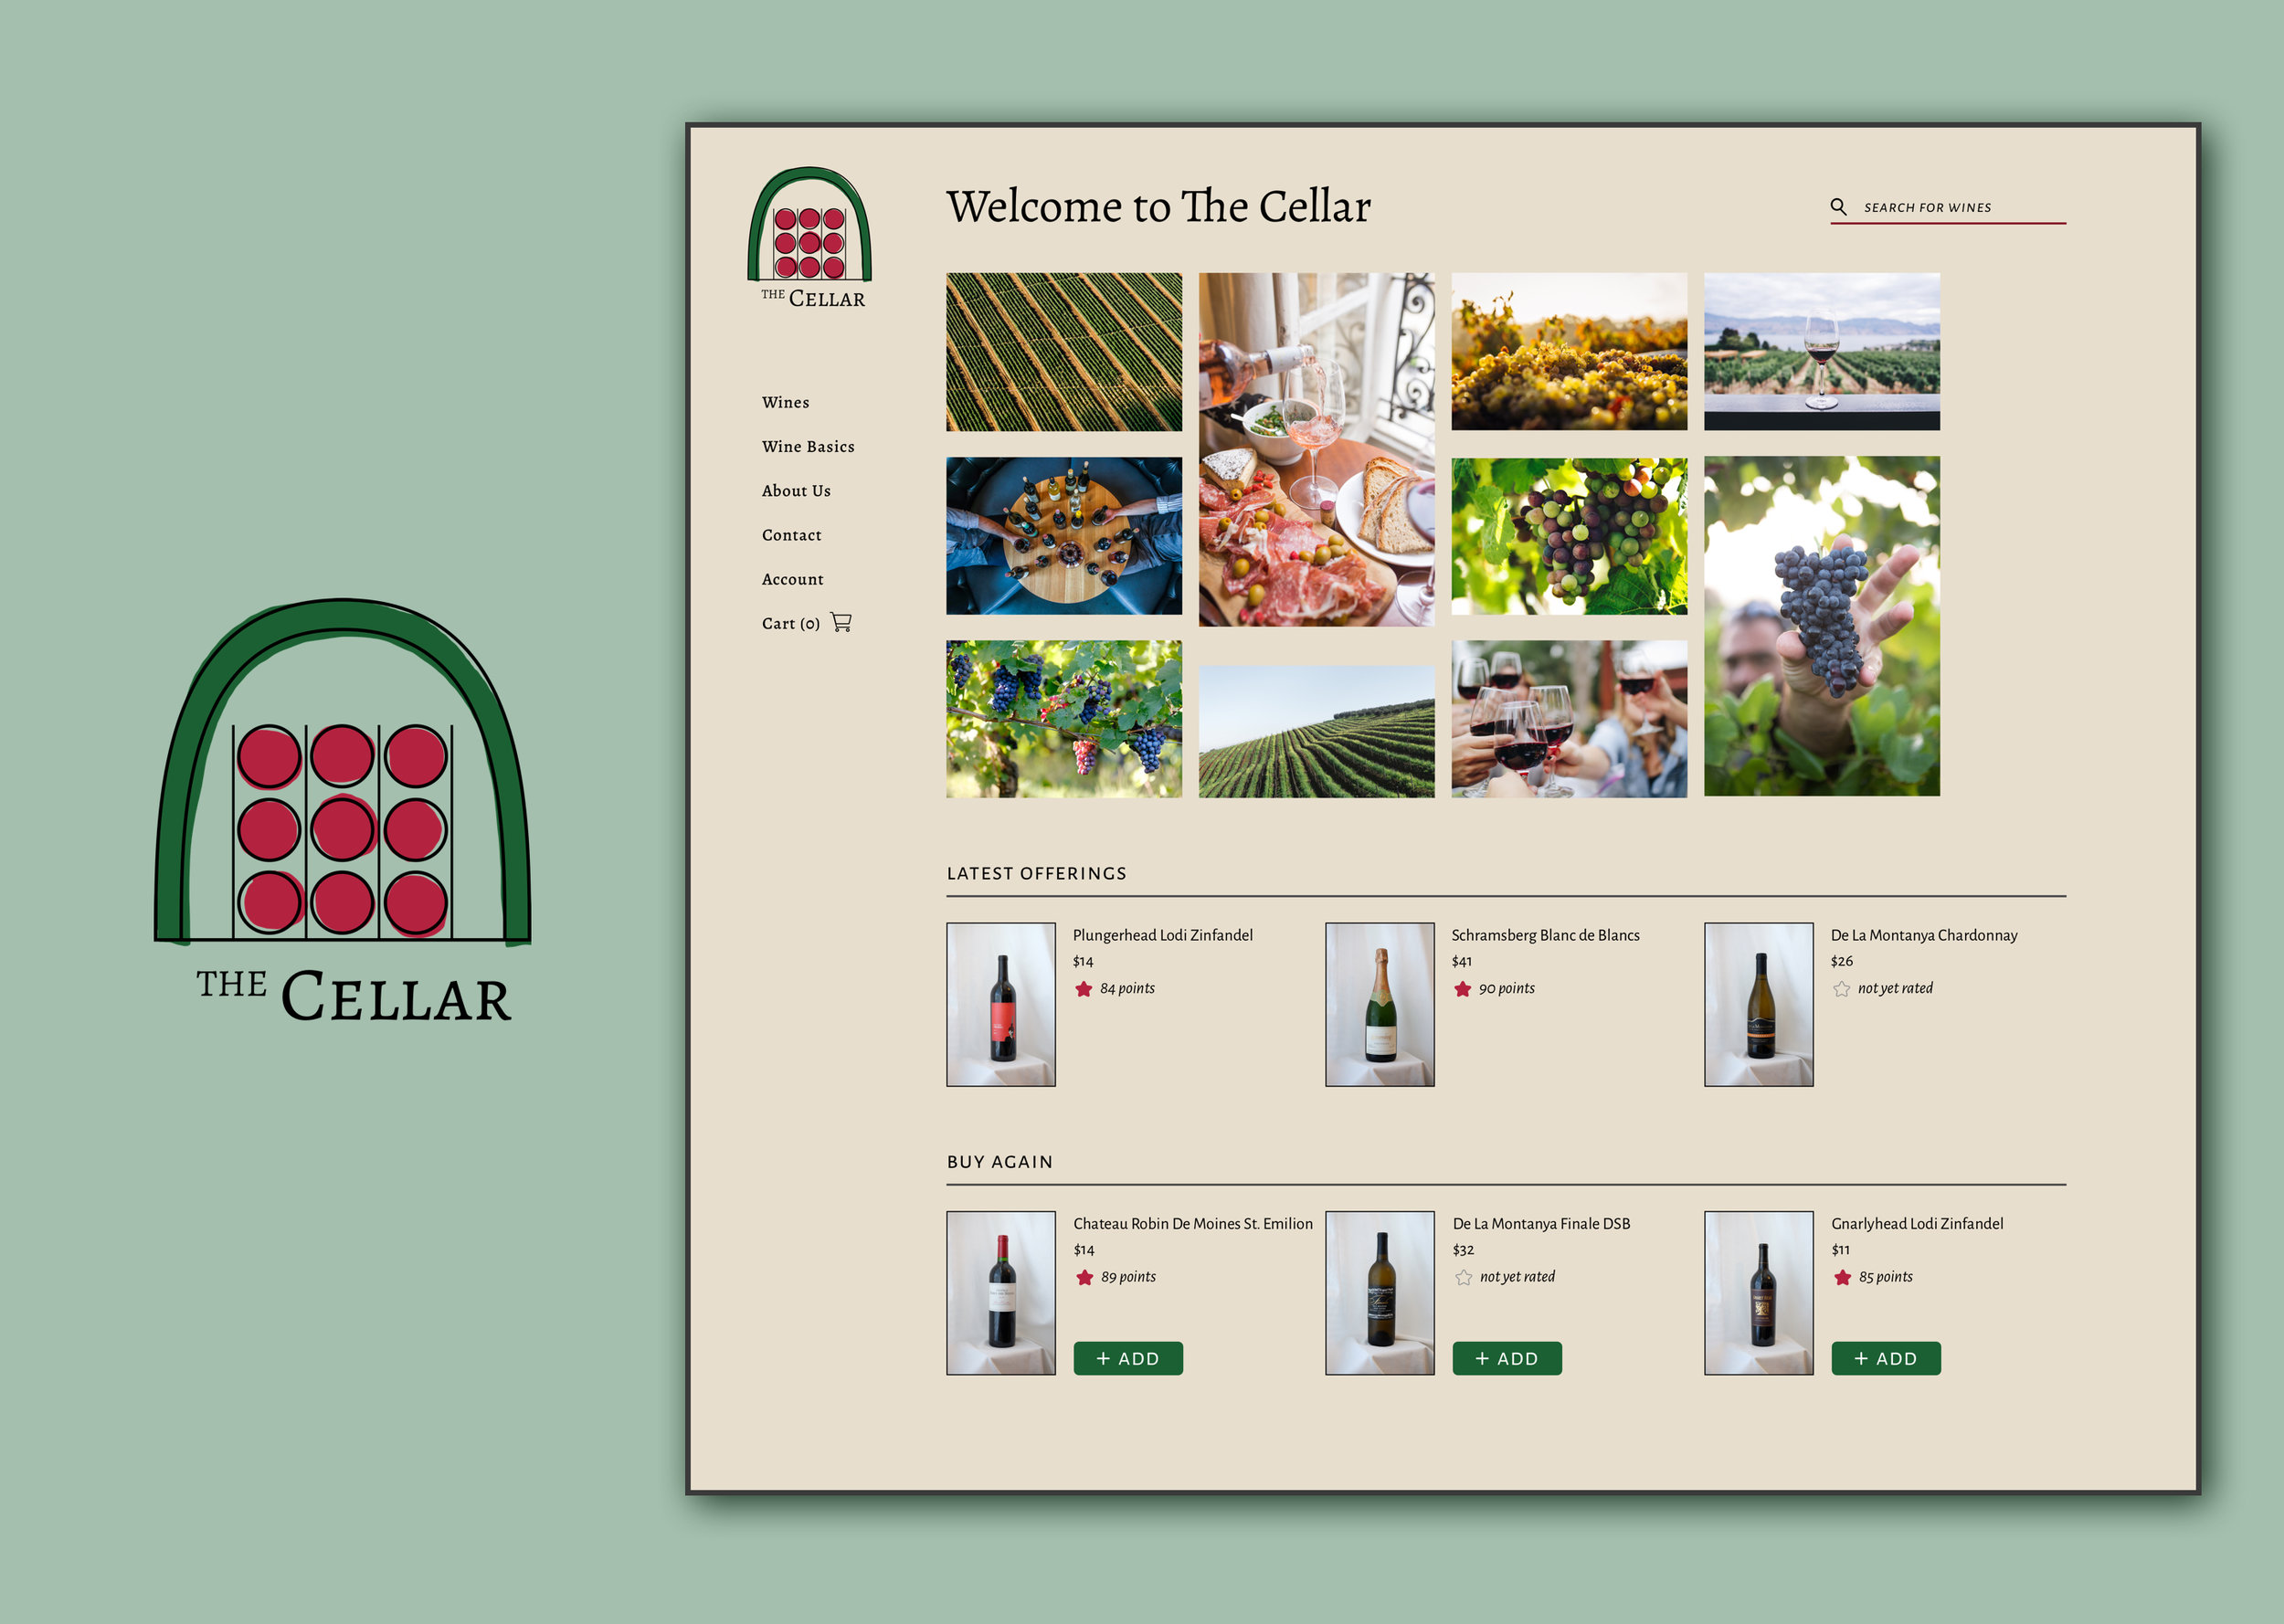 The Cellar - A modern online wine storeBranding/Identity | Responsive Website | Email Template